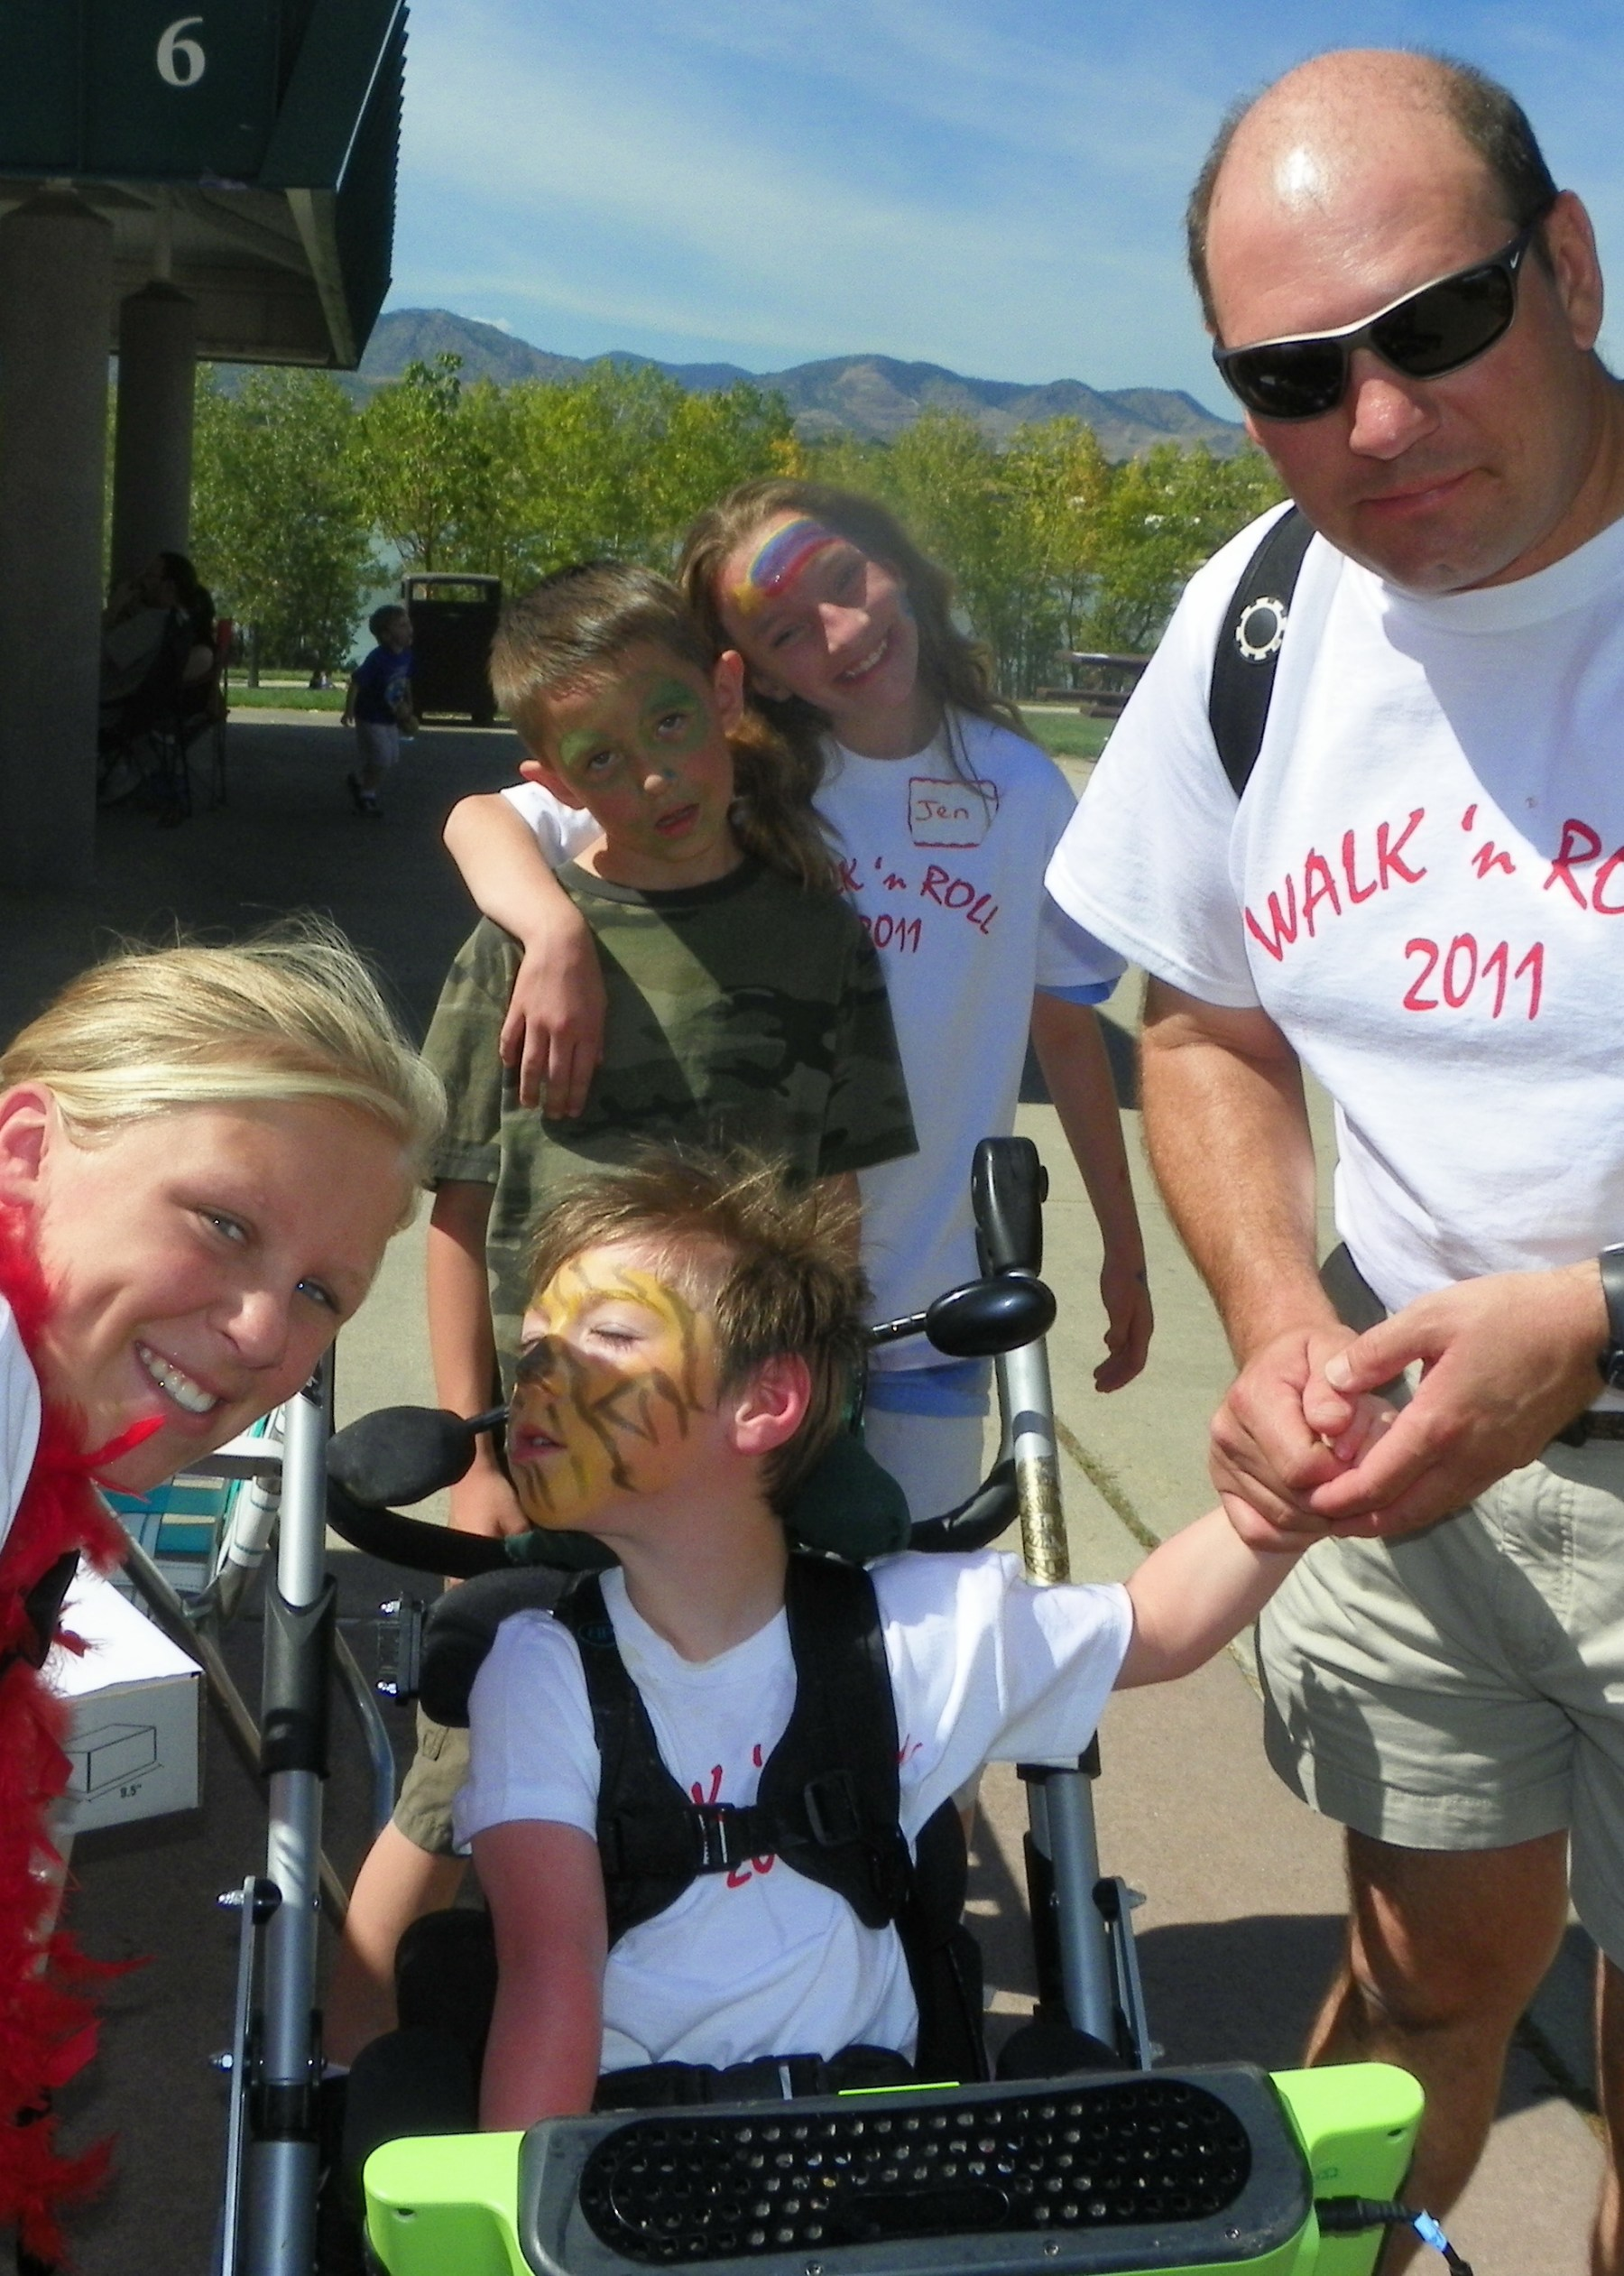 A father holds the hand of a child in a wheelchair as two other children and a youth volunteer, all with their faces painted, look on, at the 2011 Walk 'n' Roll